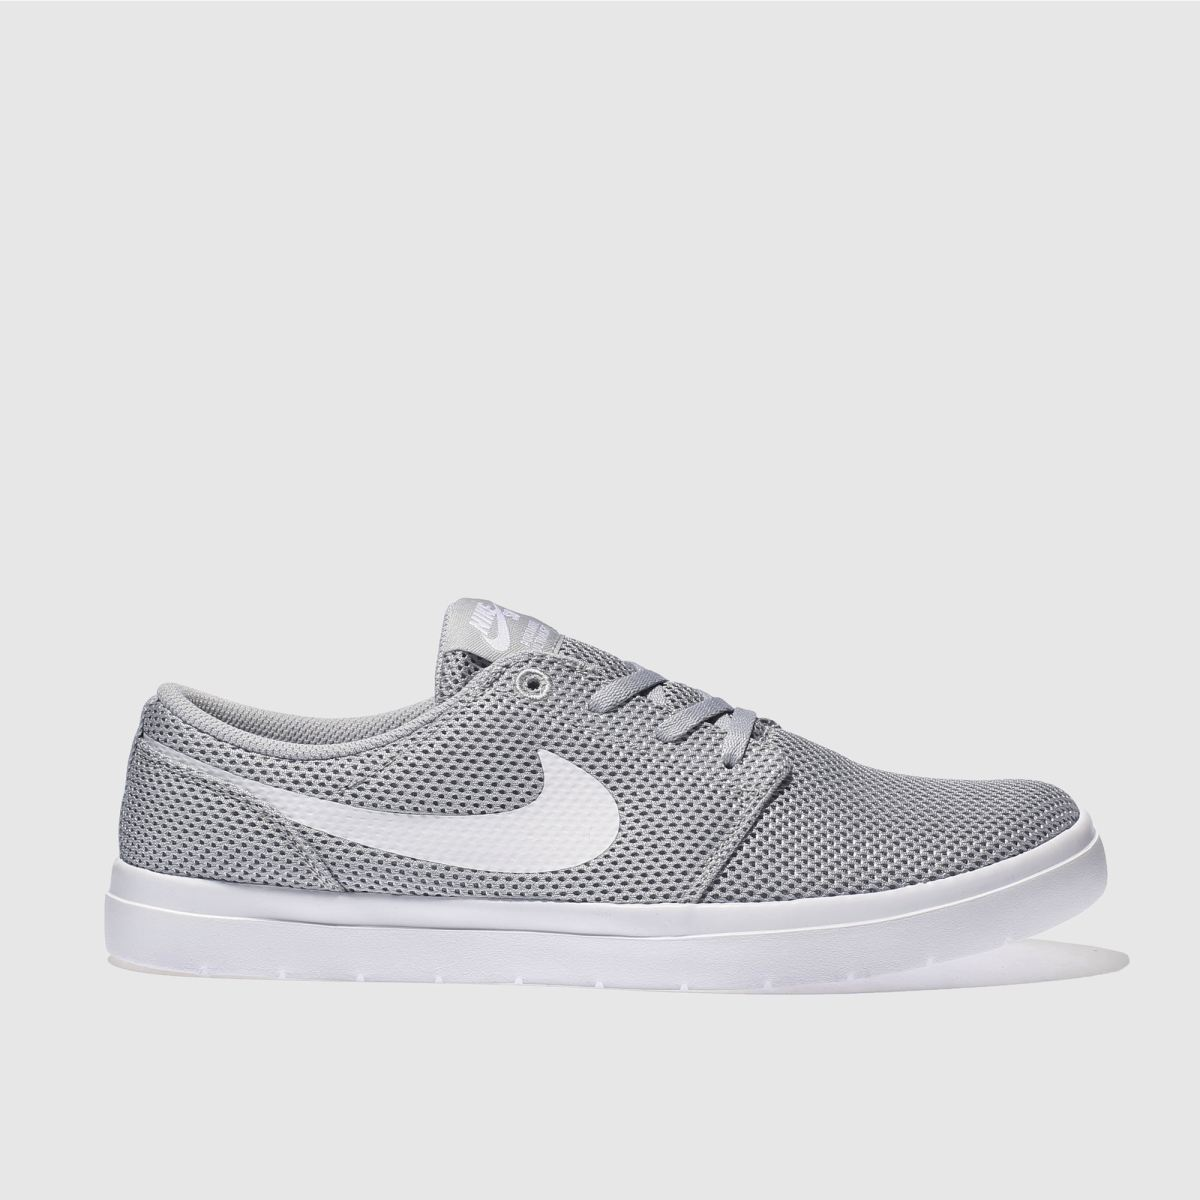 Nike SB Solarsoft Portmore II Men's Skateboarding Shoe - Grey Image